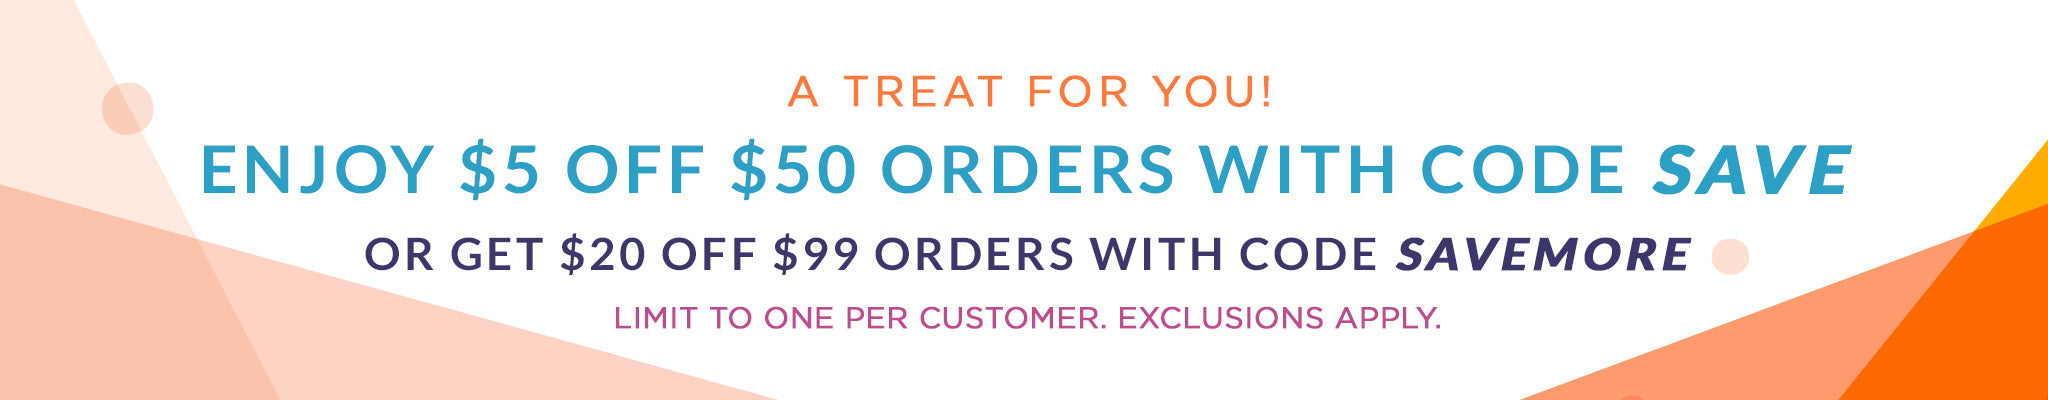 A Treat for You! Enjoy $5 Off $50 Orders with code SAVE | Or Get $20 Off $99 Orders with code SAVEMORE | Limit to one per customer. Exclusions apply.